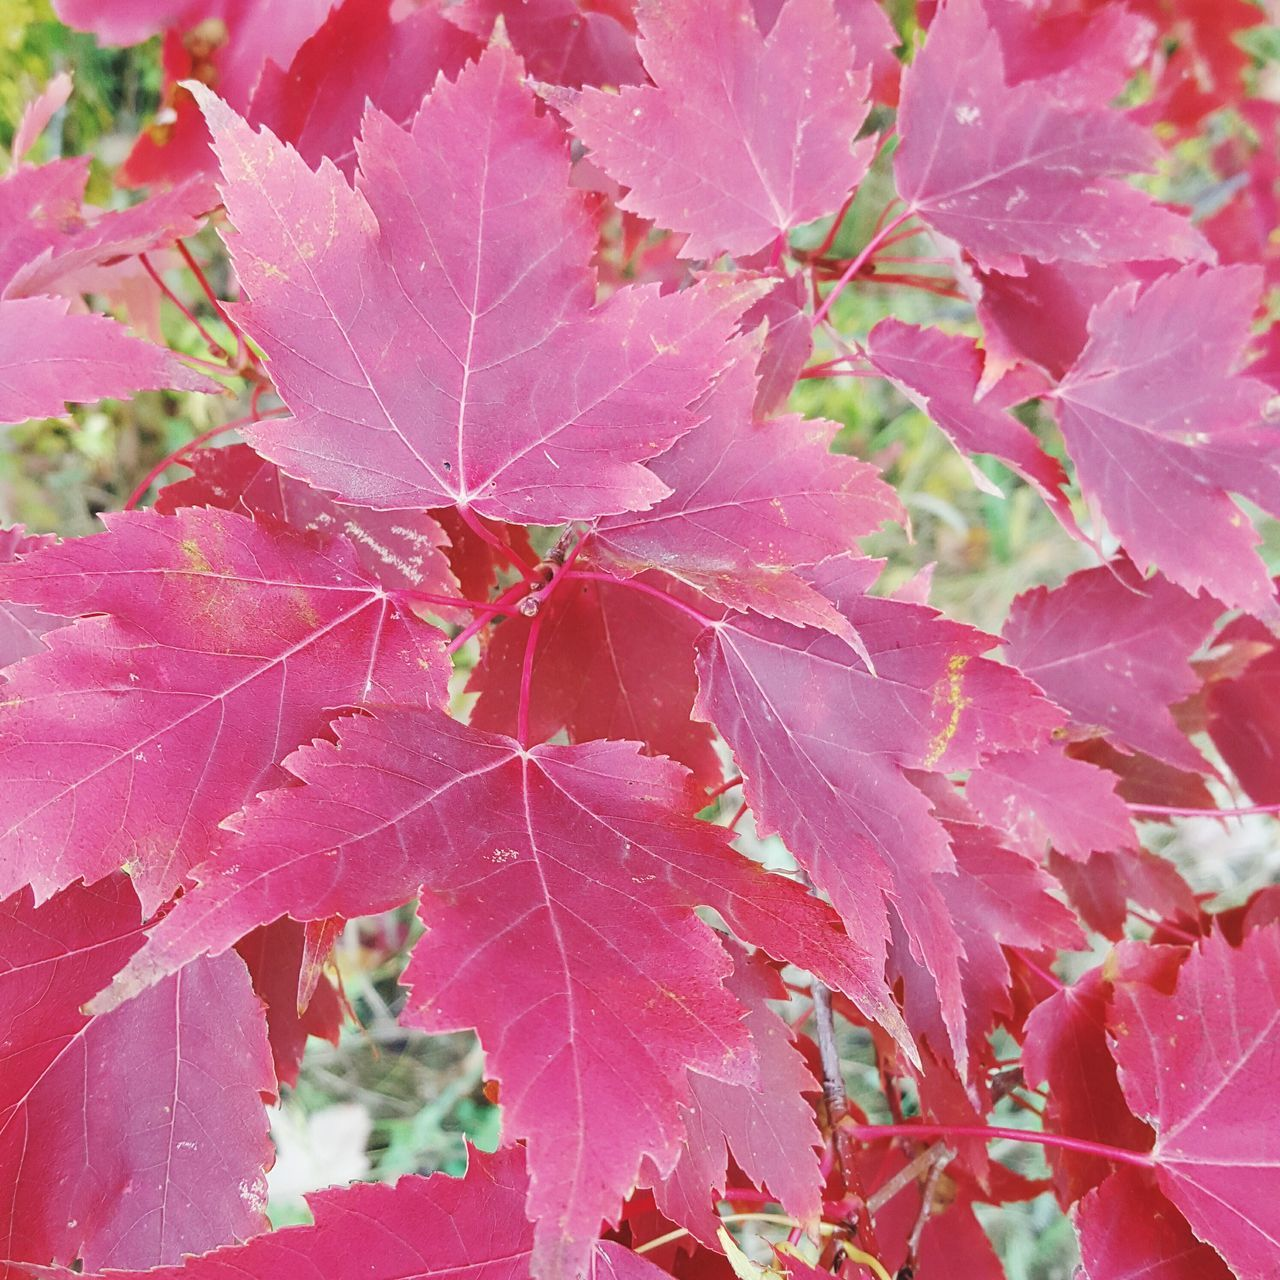 leaf, change, beauty in nature, nature, autumn, day, outdoors, pink color, no people, growth, fragility, close-up, maple leaf, plant, maple, tree